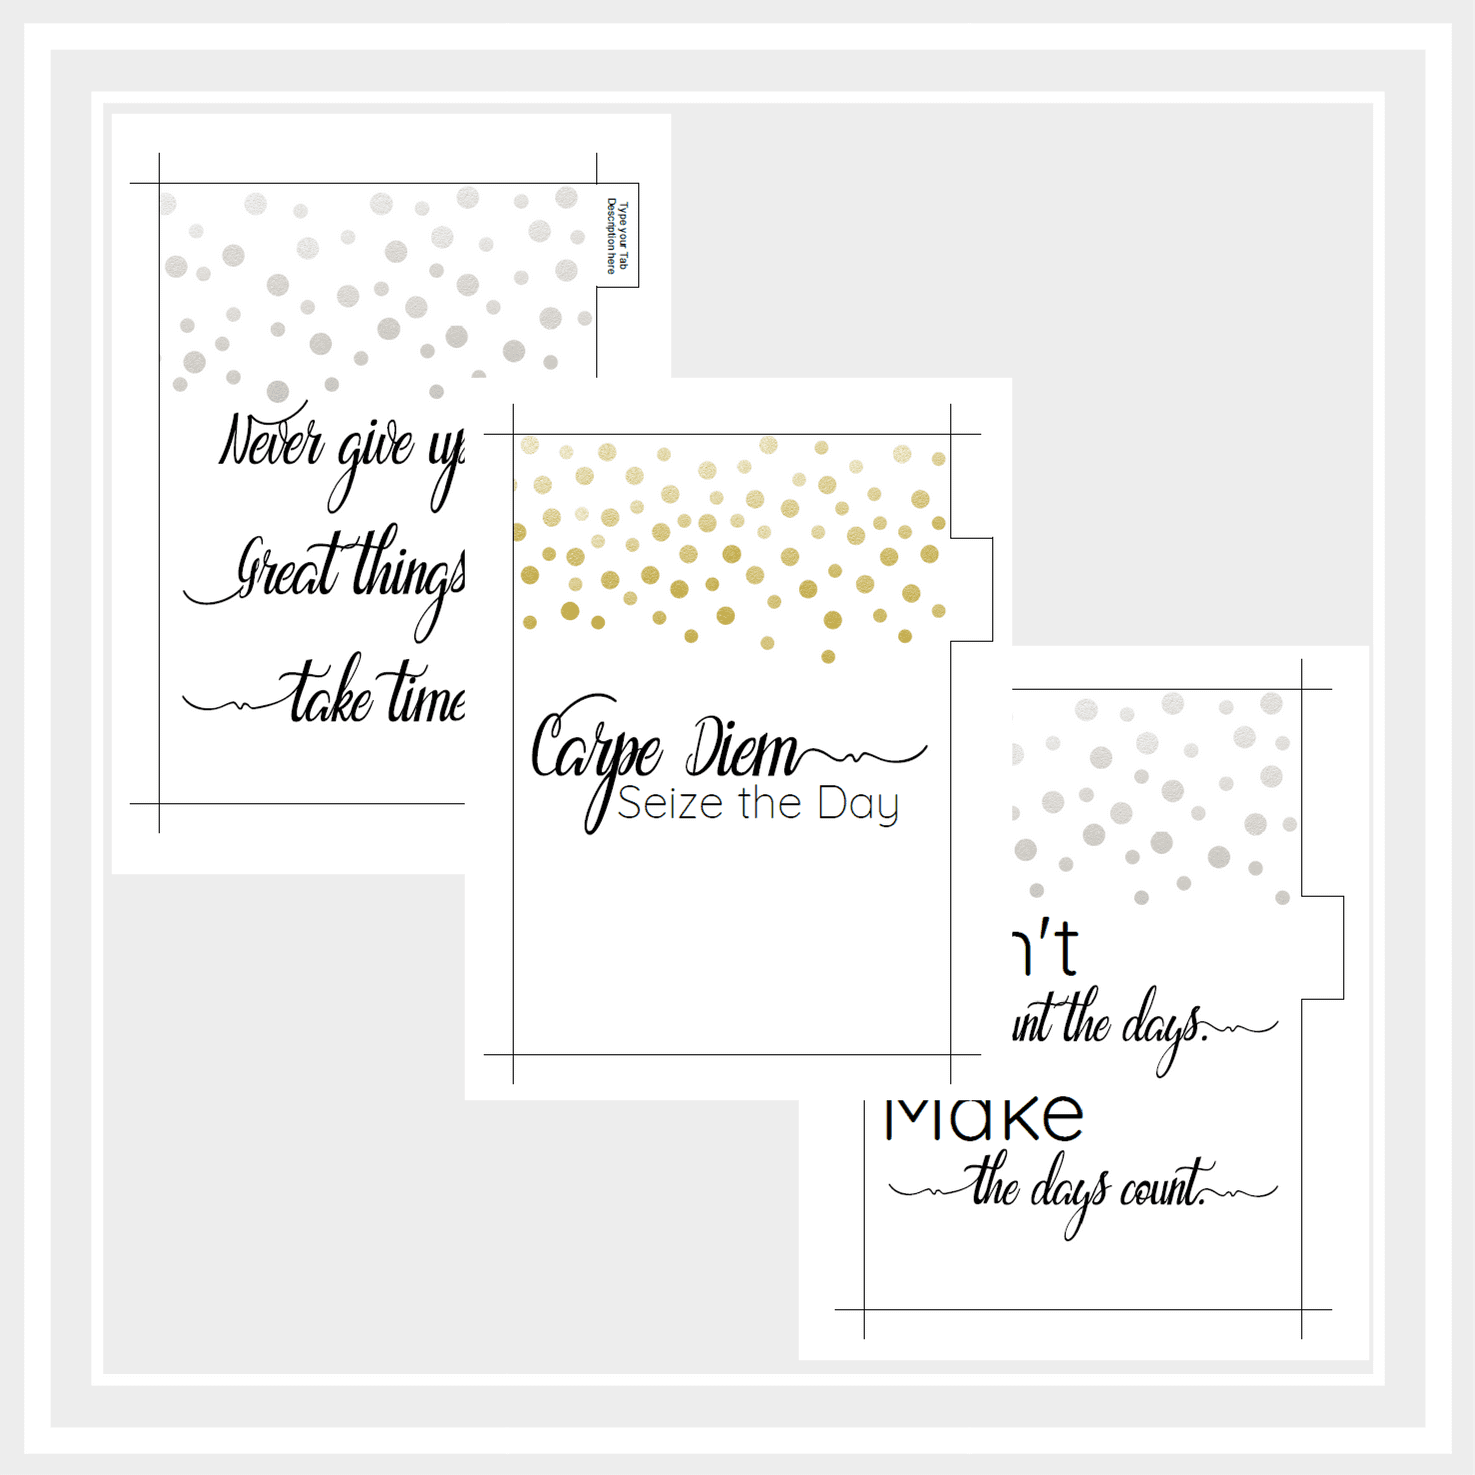 image regarding Printable Dividers known as A5 Printable Planner Dividers with Inspirational Prices